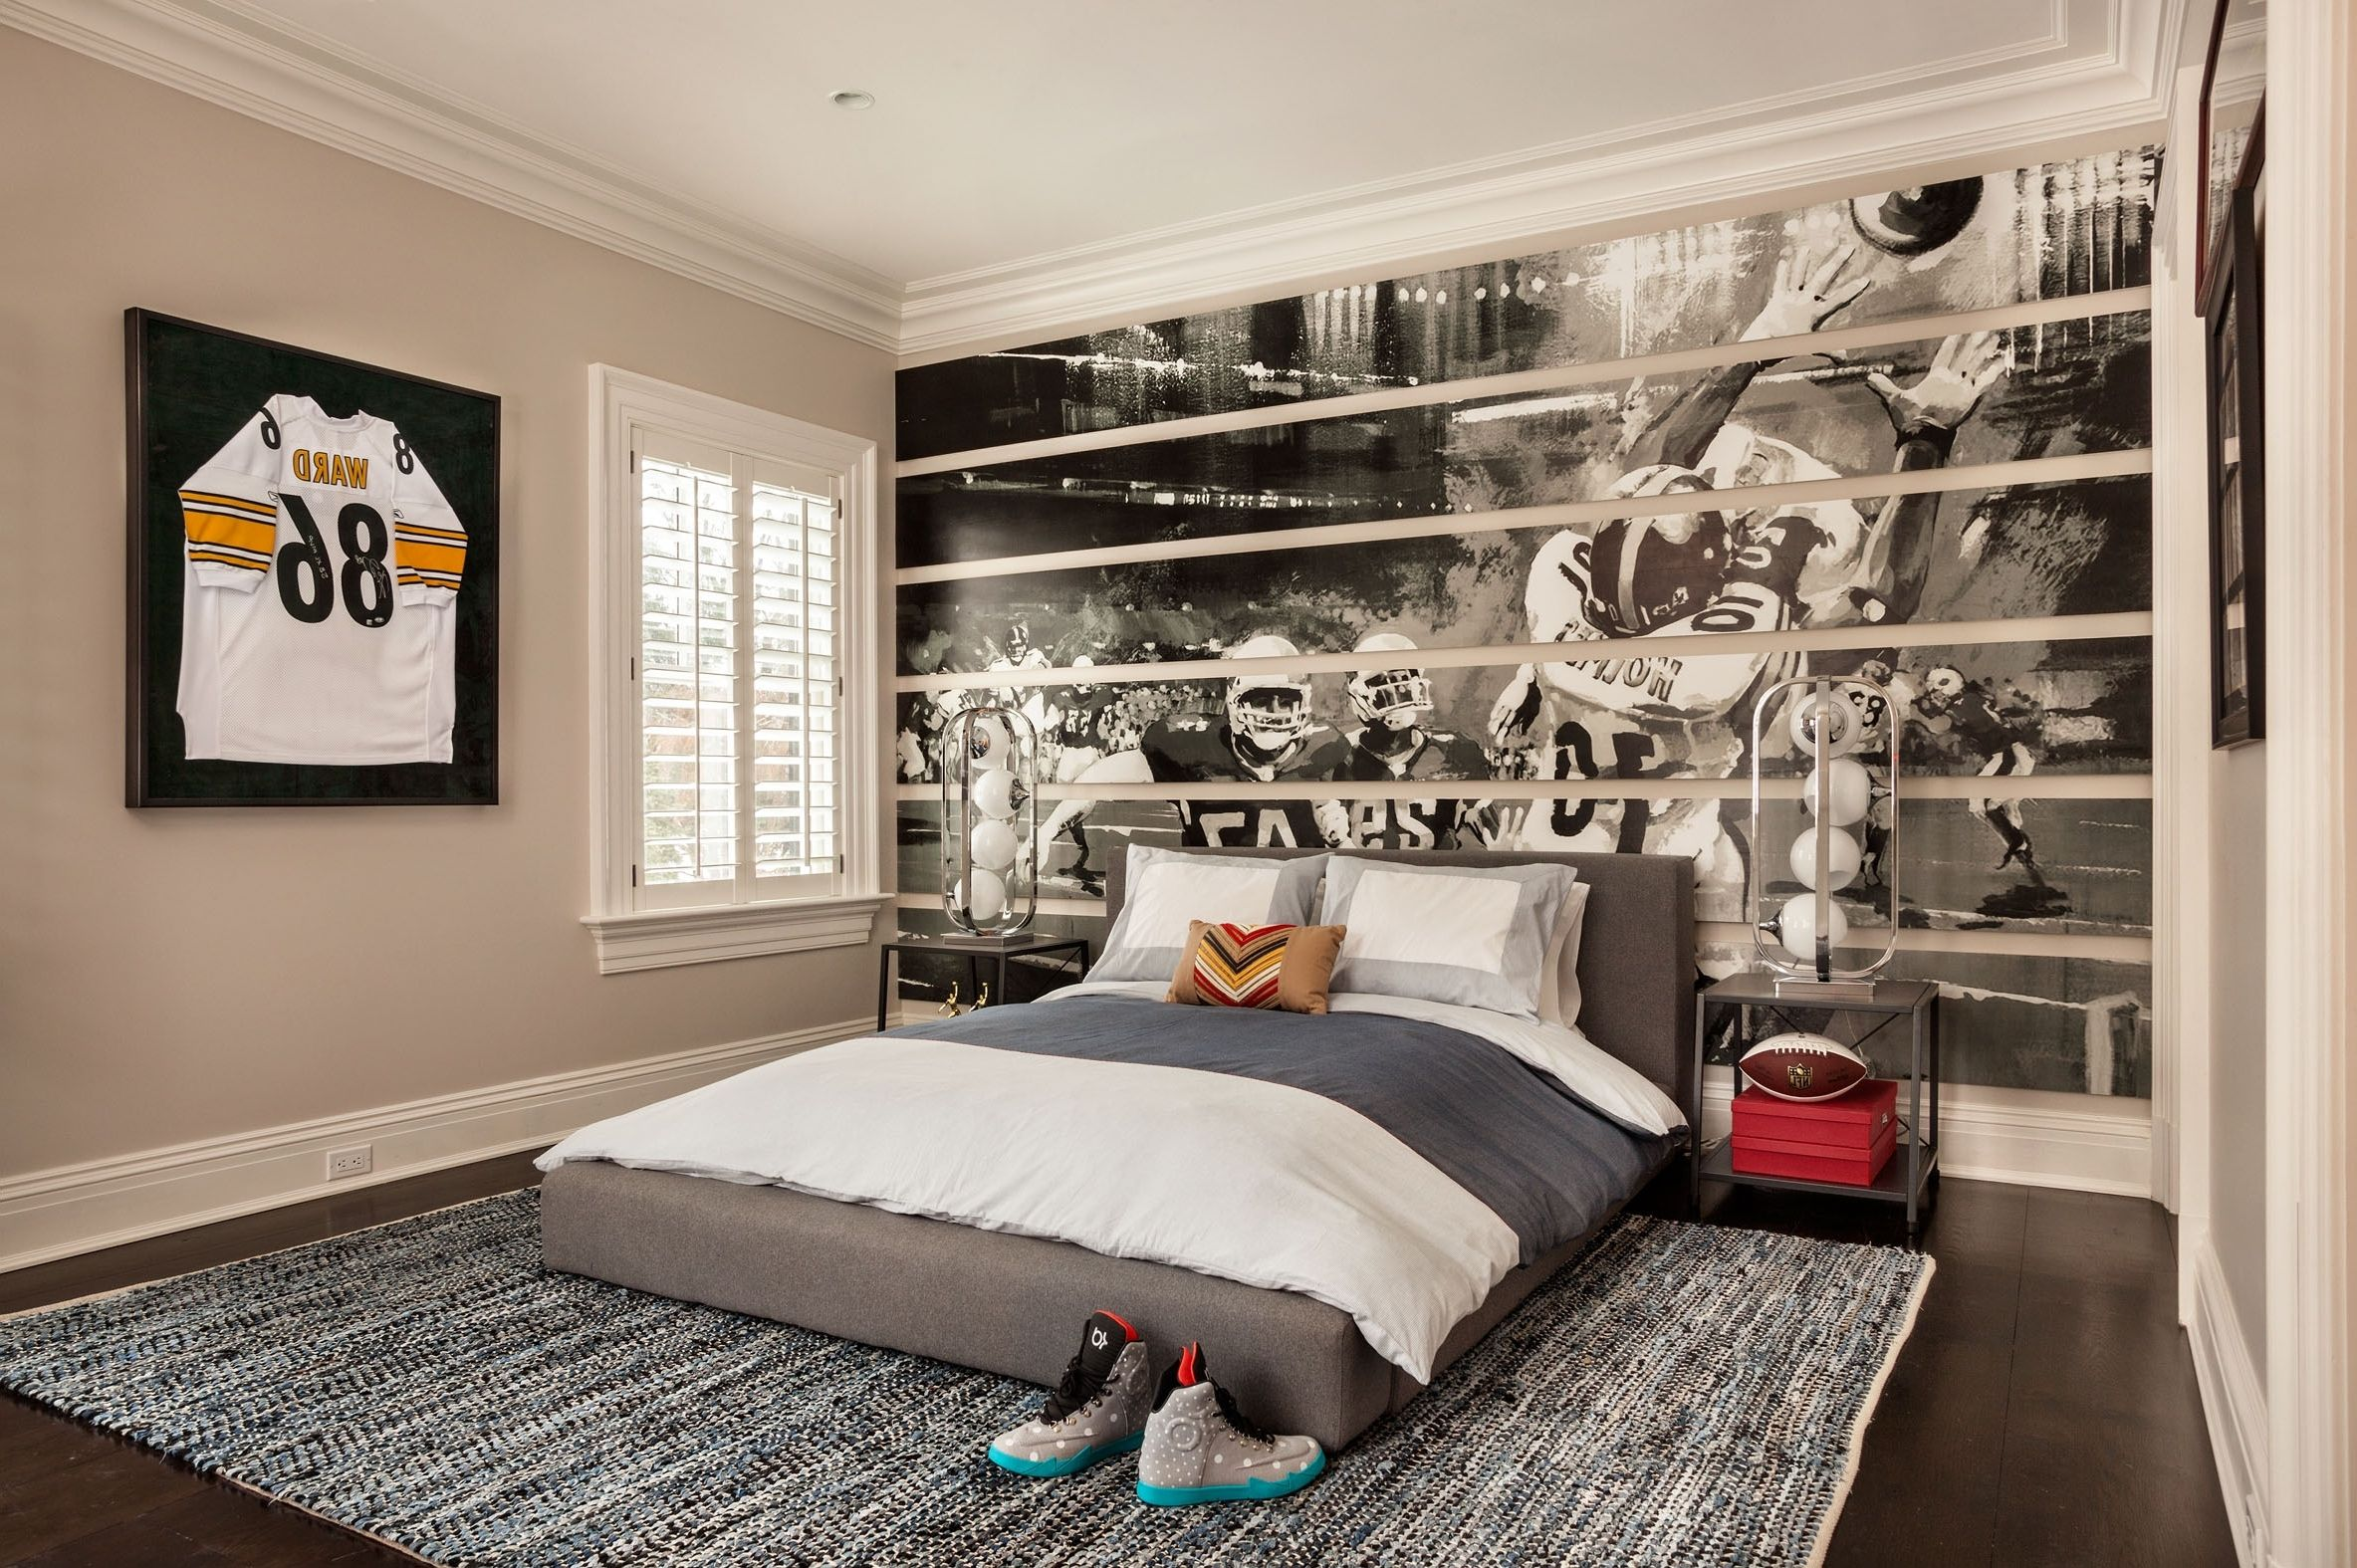 Pin on Connor's room ideas